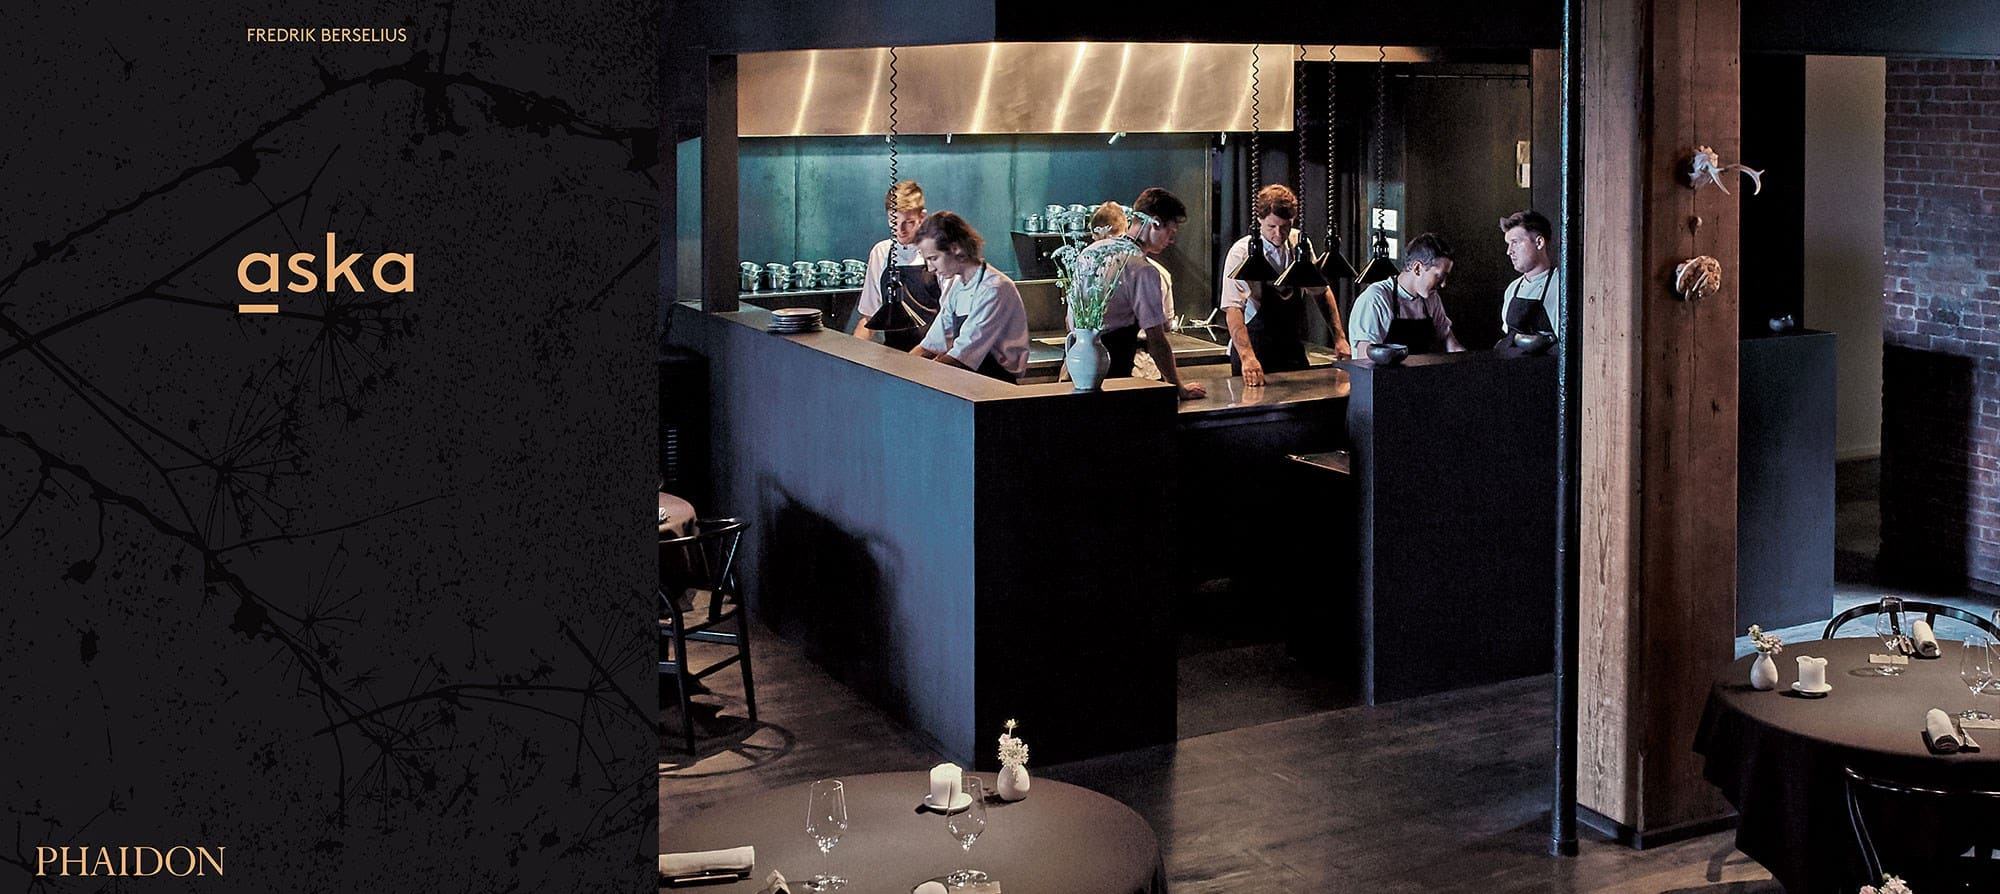 Aska: book and restaurant